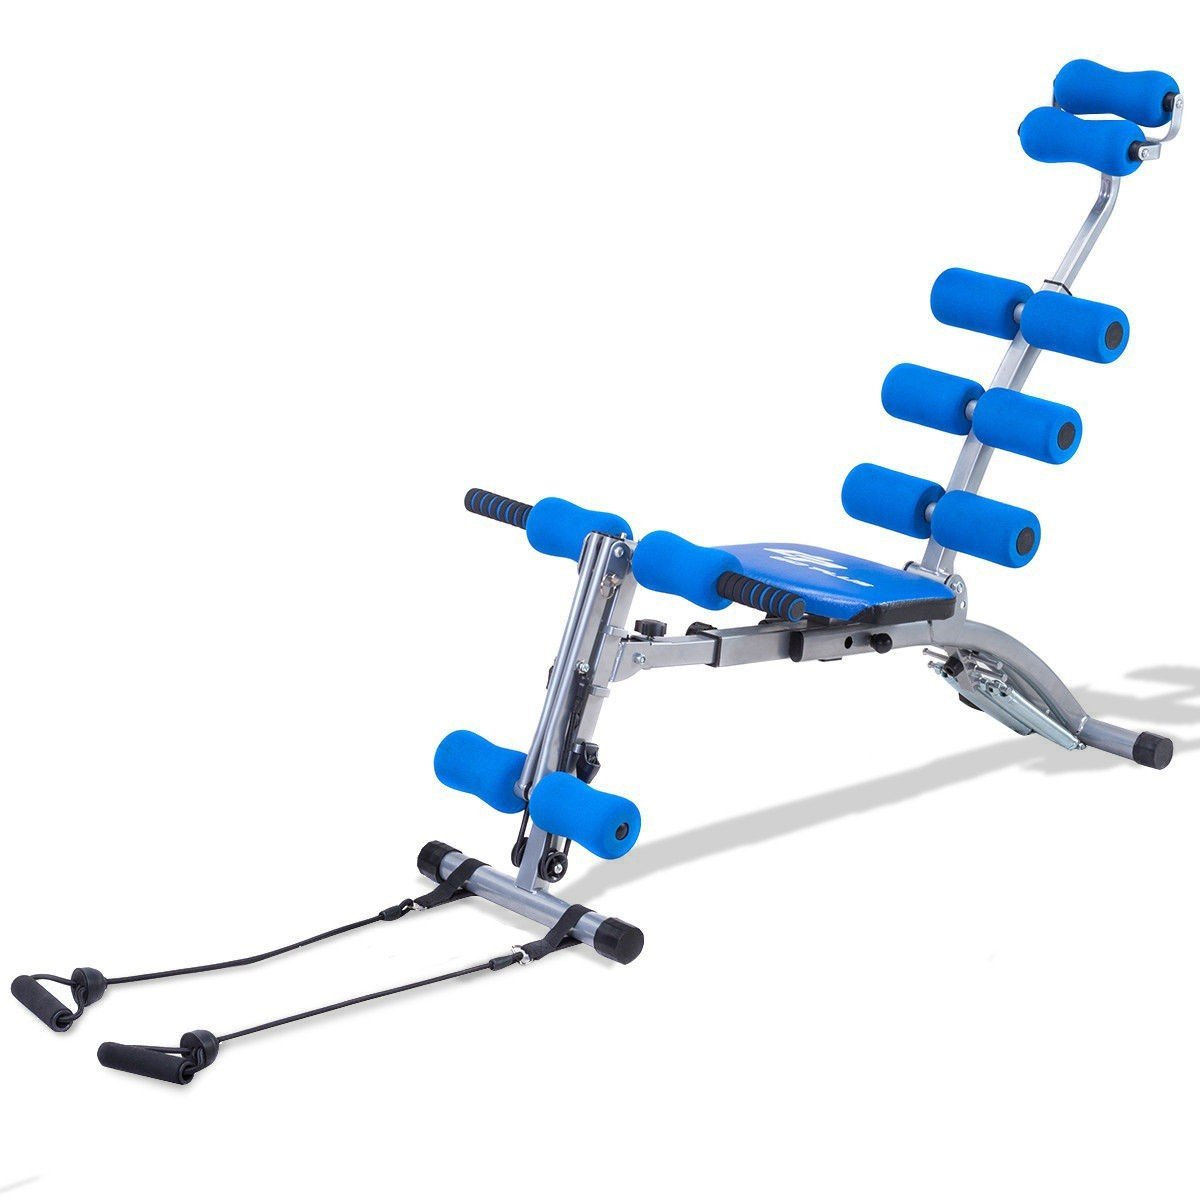 5 in 1 Multi-functional Twister Rocket Abdominal Trainer Bench - Orange